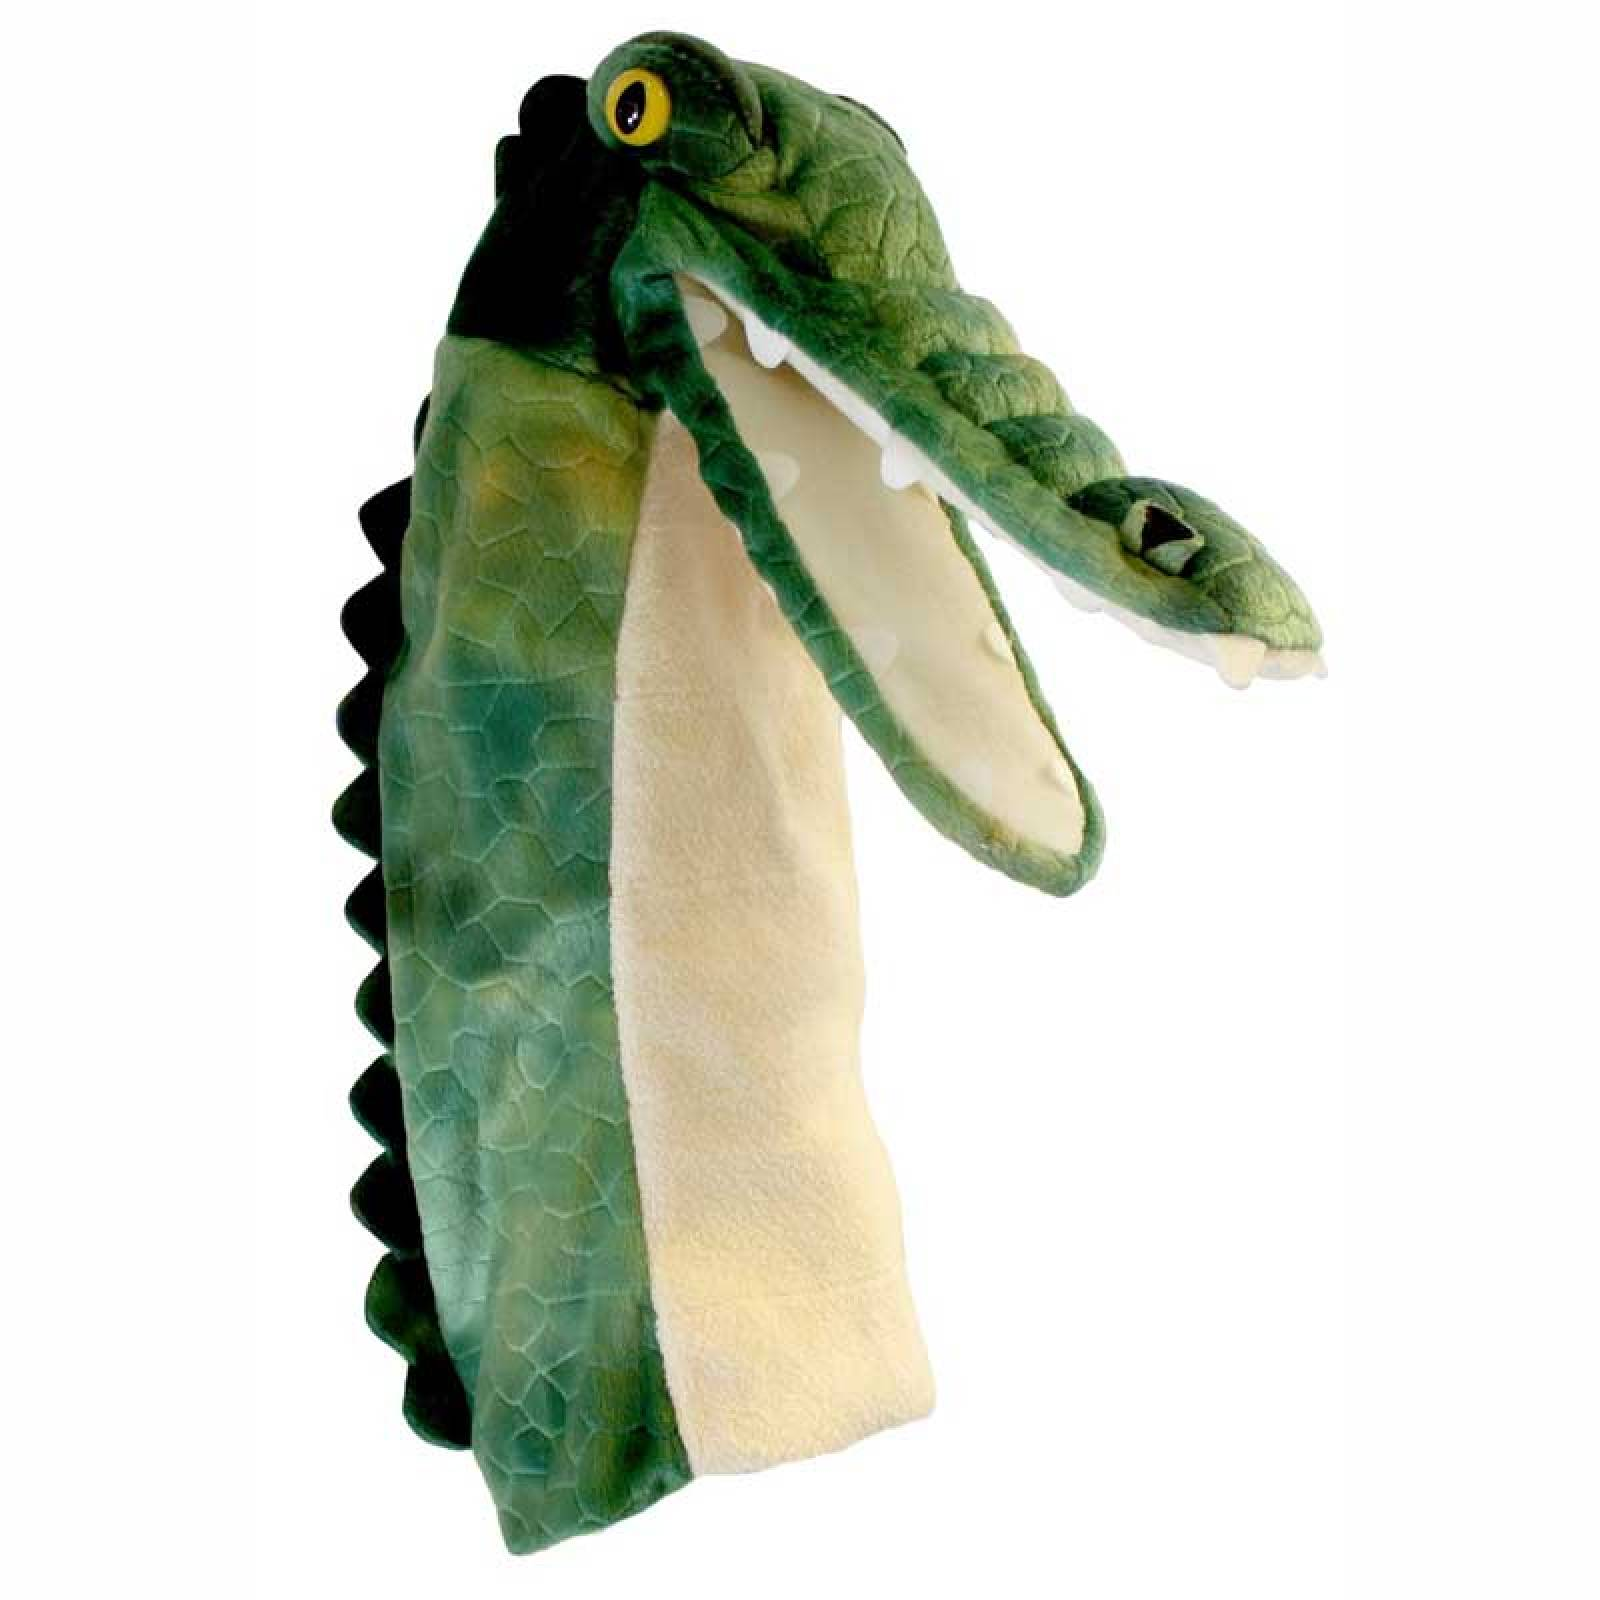 Crocodile Long Sleeved Glove Puppet thumbnails